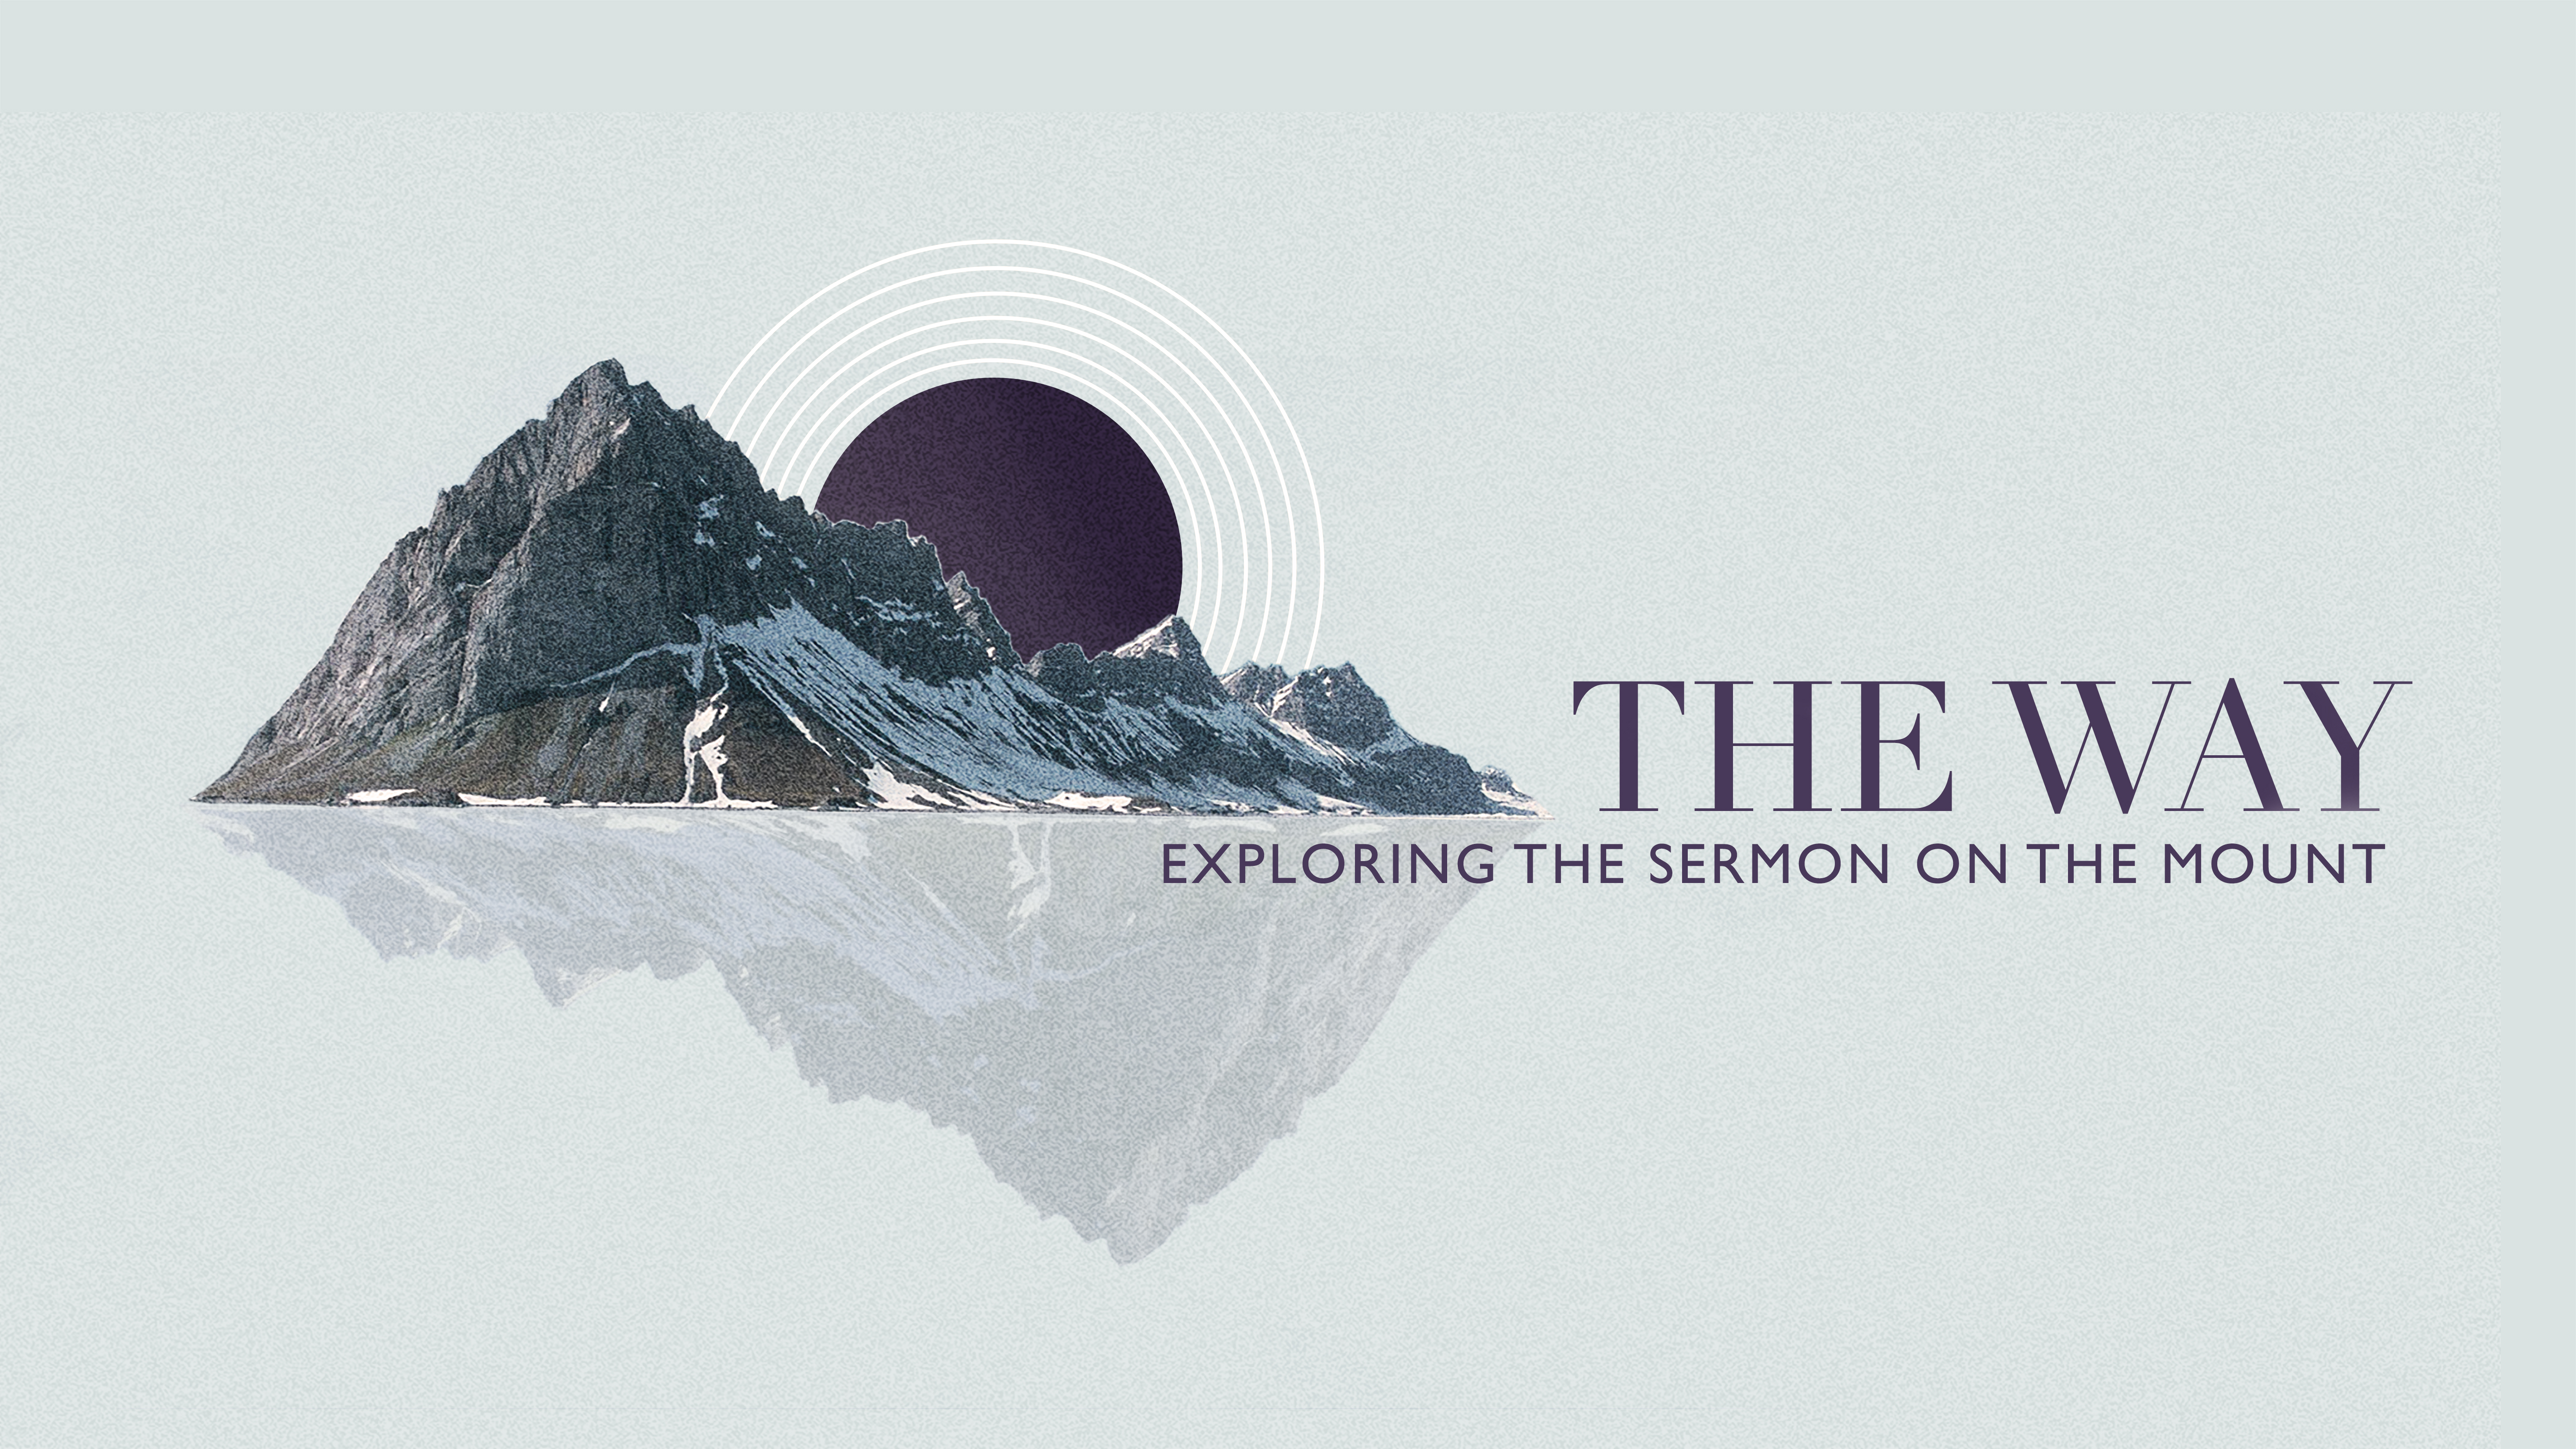 The Way: Exploring the Sermon on the Mount